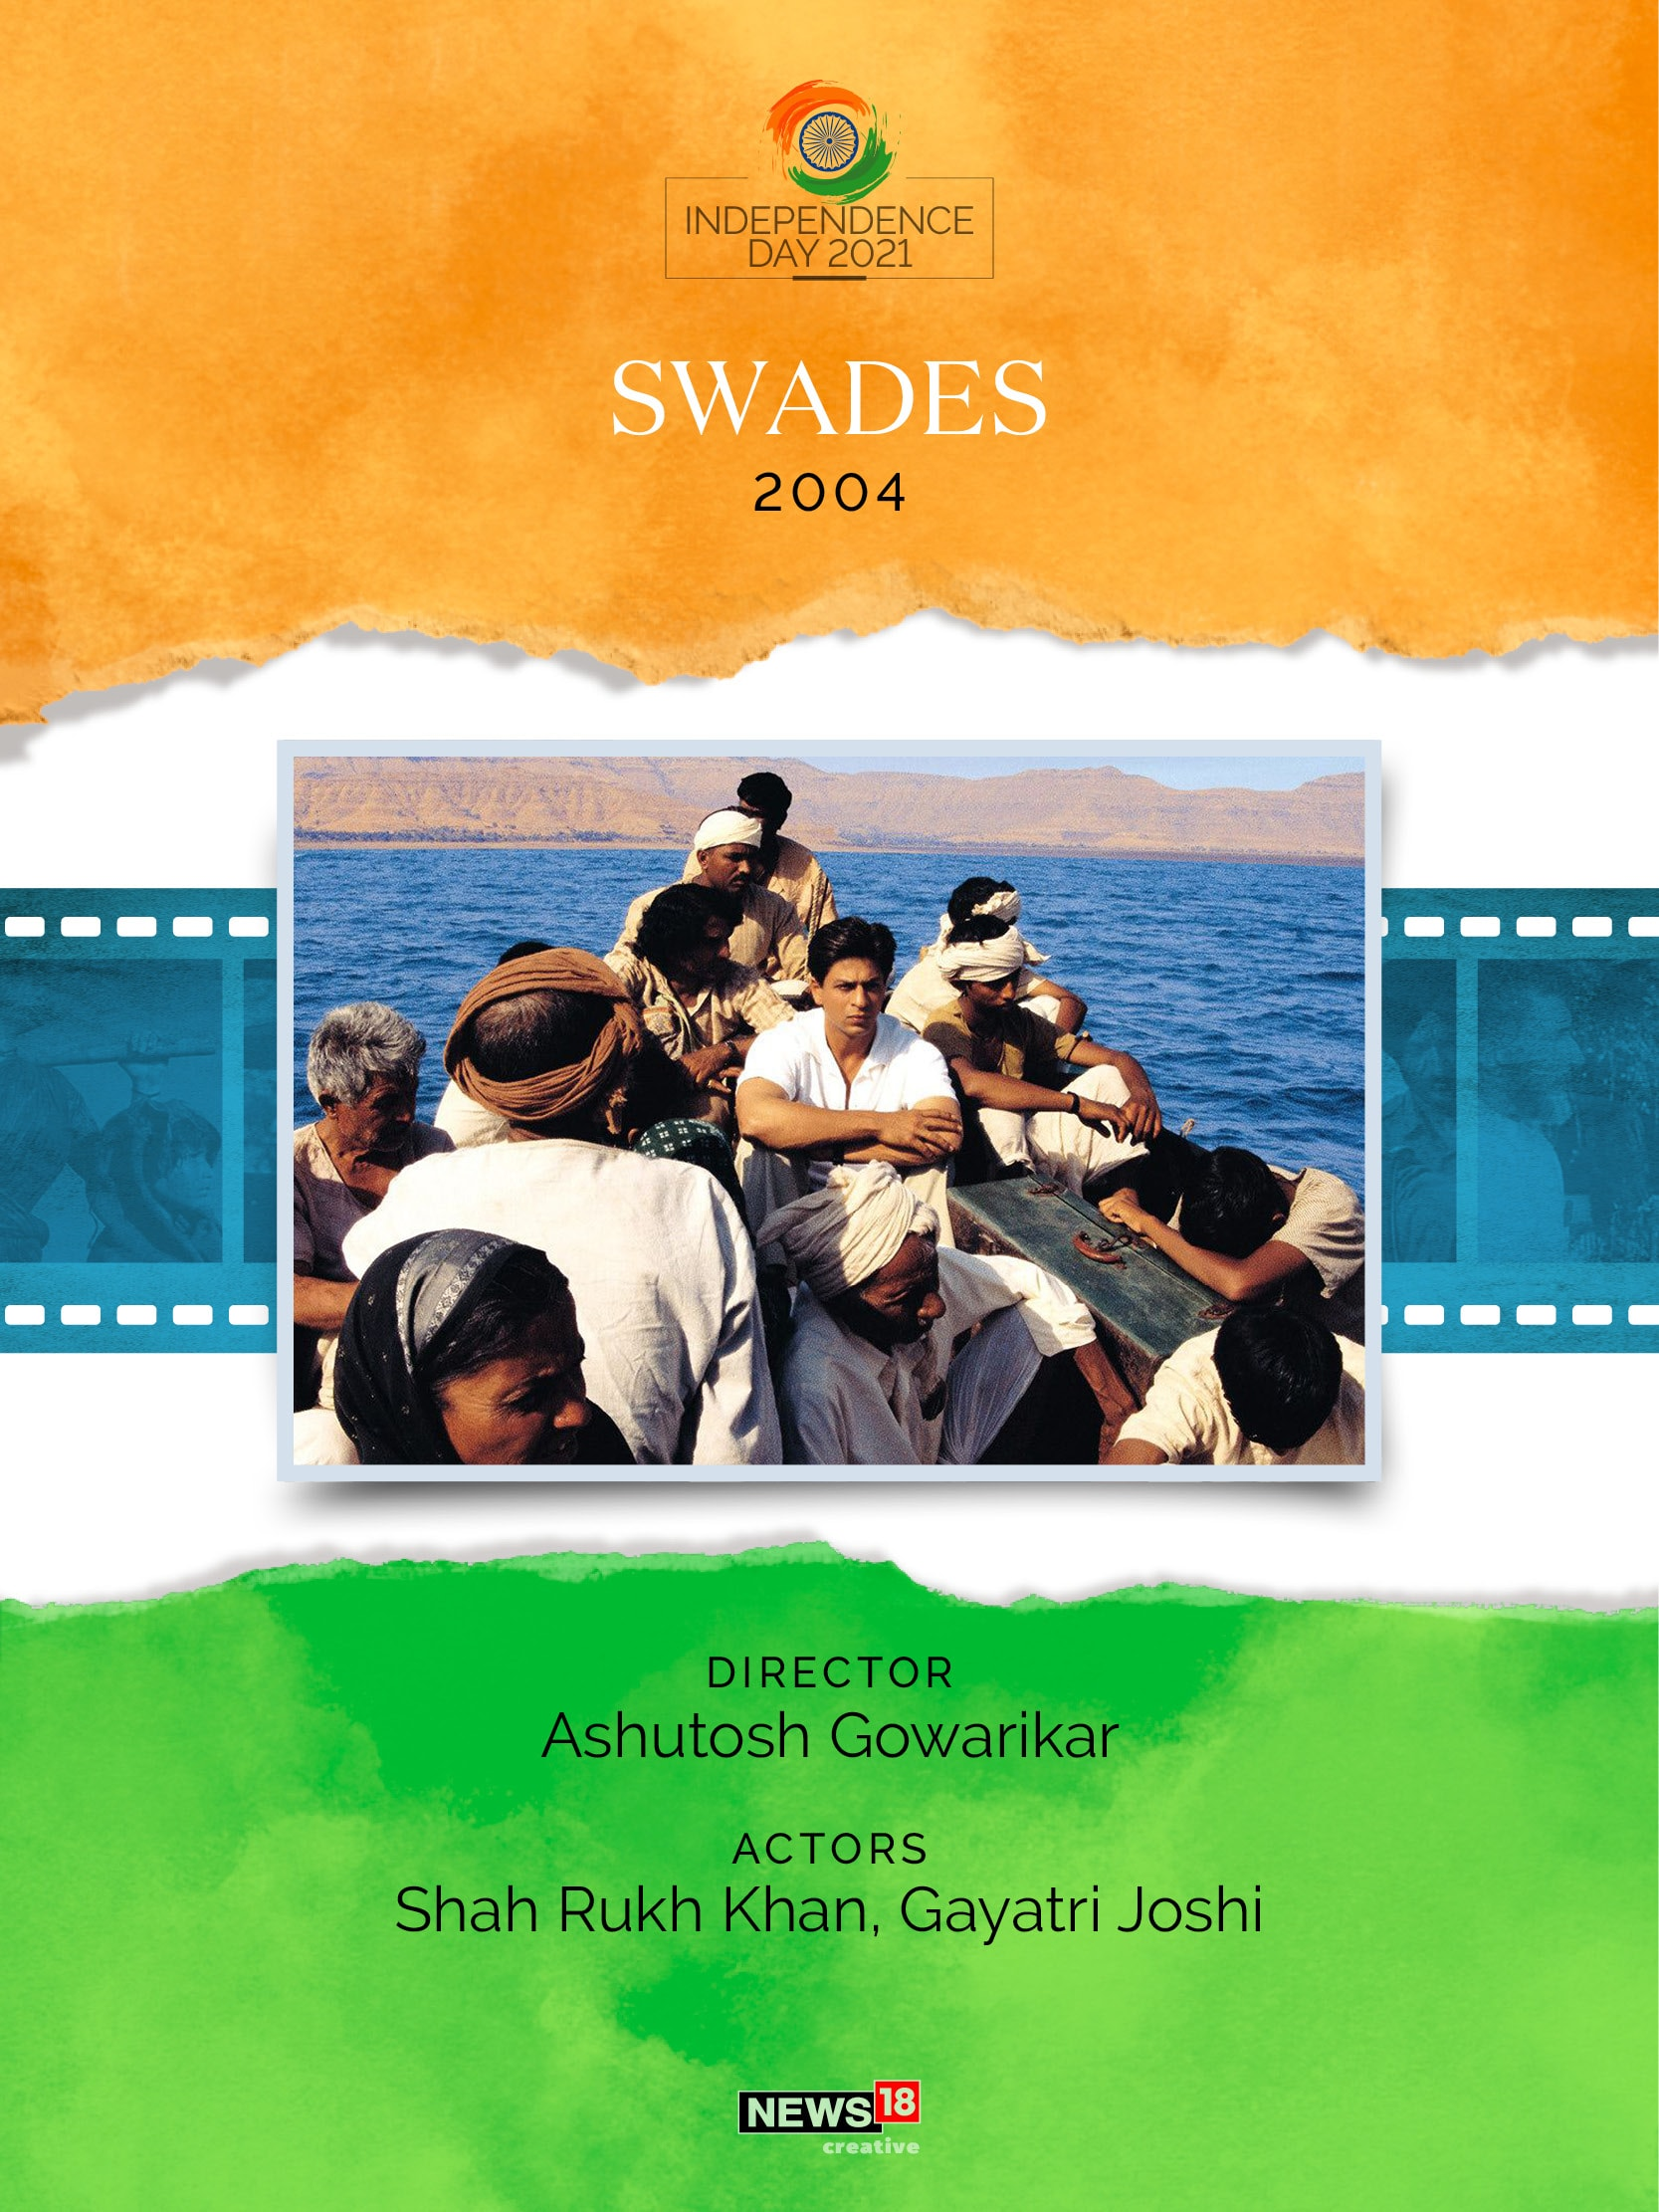 Swades movie 2004, bollywood, india independence day news, india news, independence day news, bollywood movies independence day, independence day movies, india patriotic films list, list of bollywood movies on independence day of india, shah rukh khan news